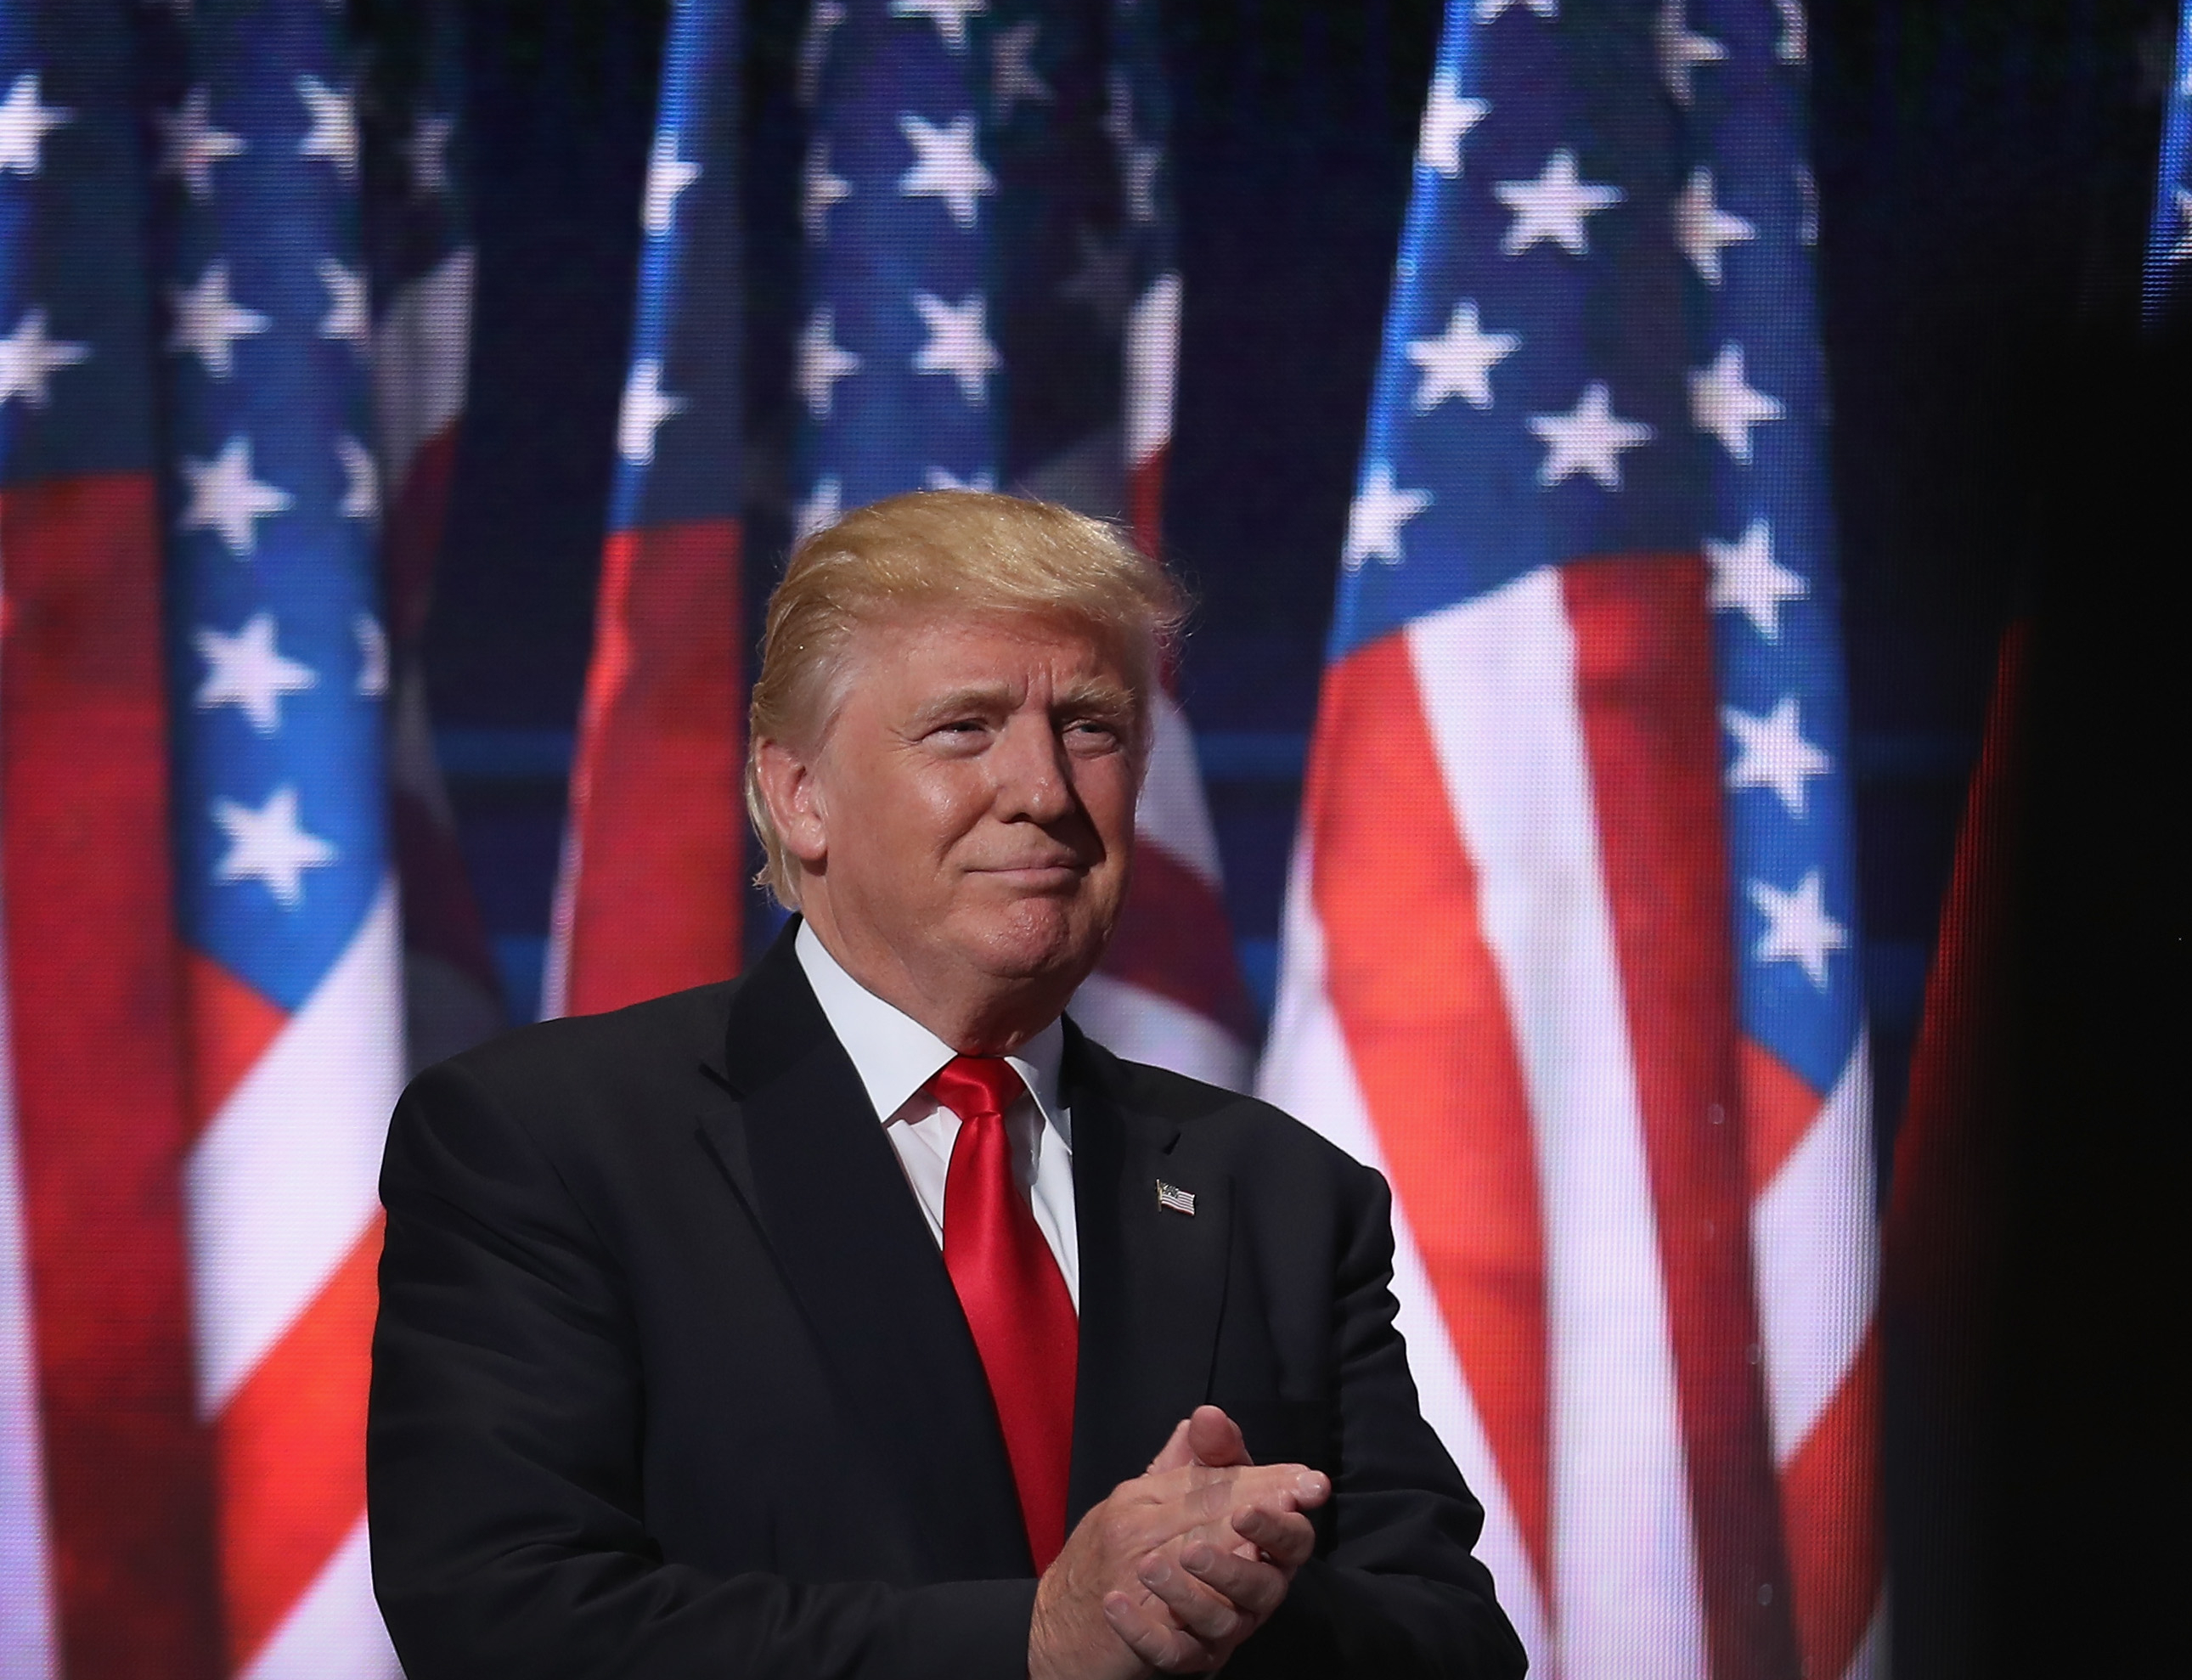 Donald Trump delivers a speech during the evening session on the fourth day of the Republican National Convention